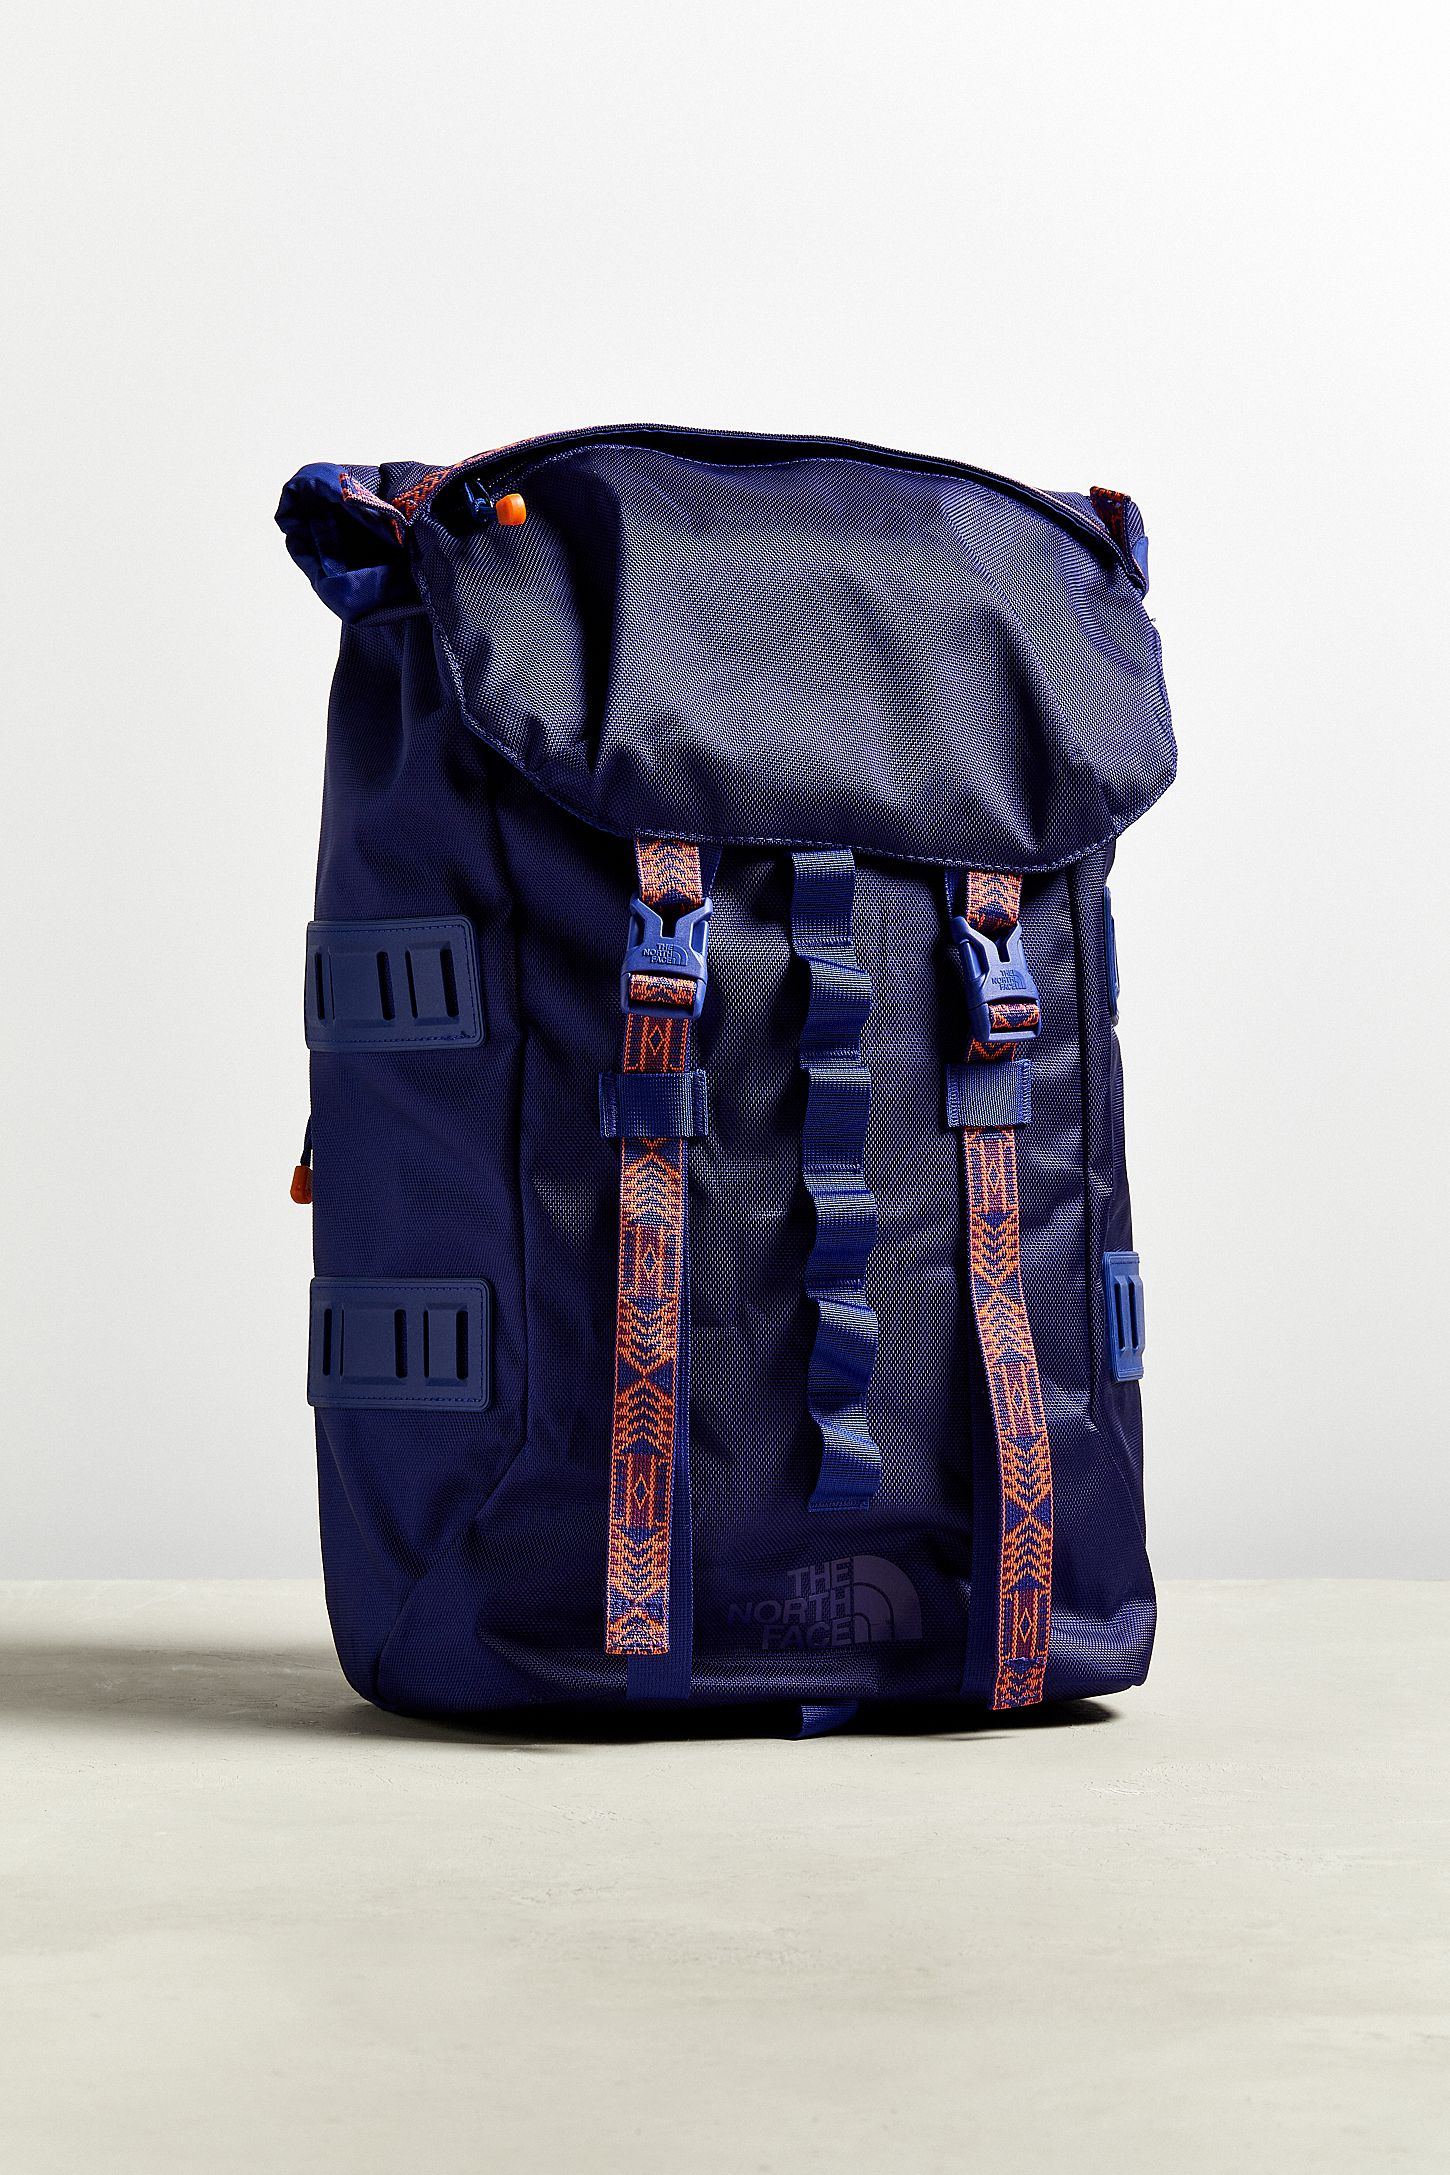 b366871af The North Face '92 RAGE Lineage Ruck 23L Backpack